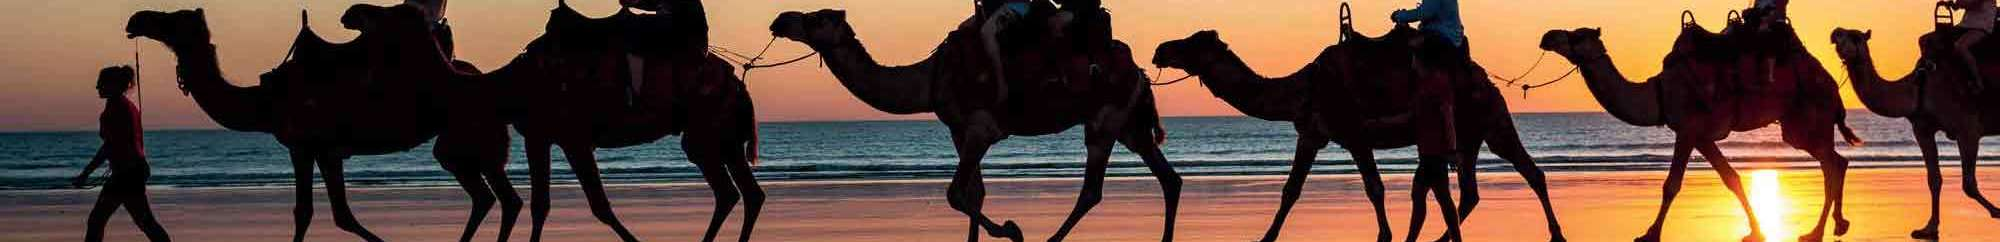 broome beach sunset camels